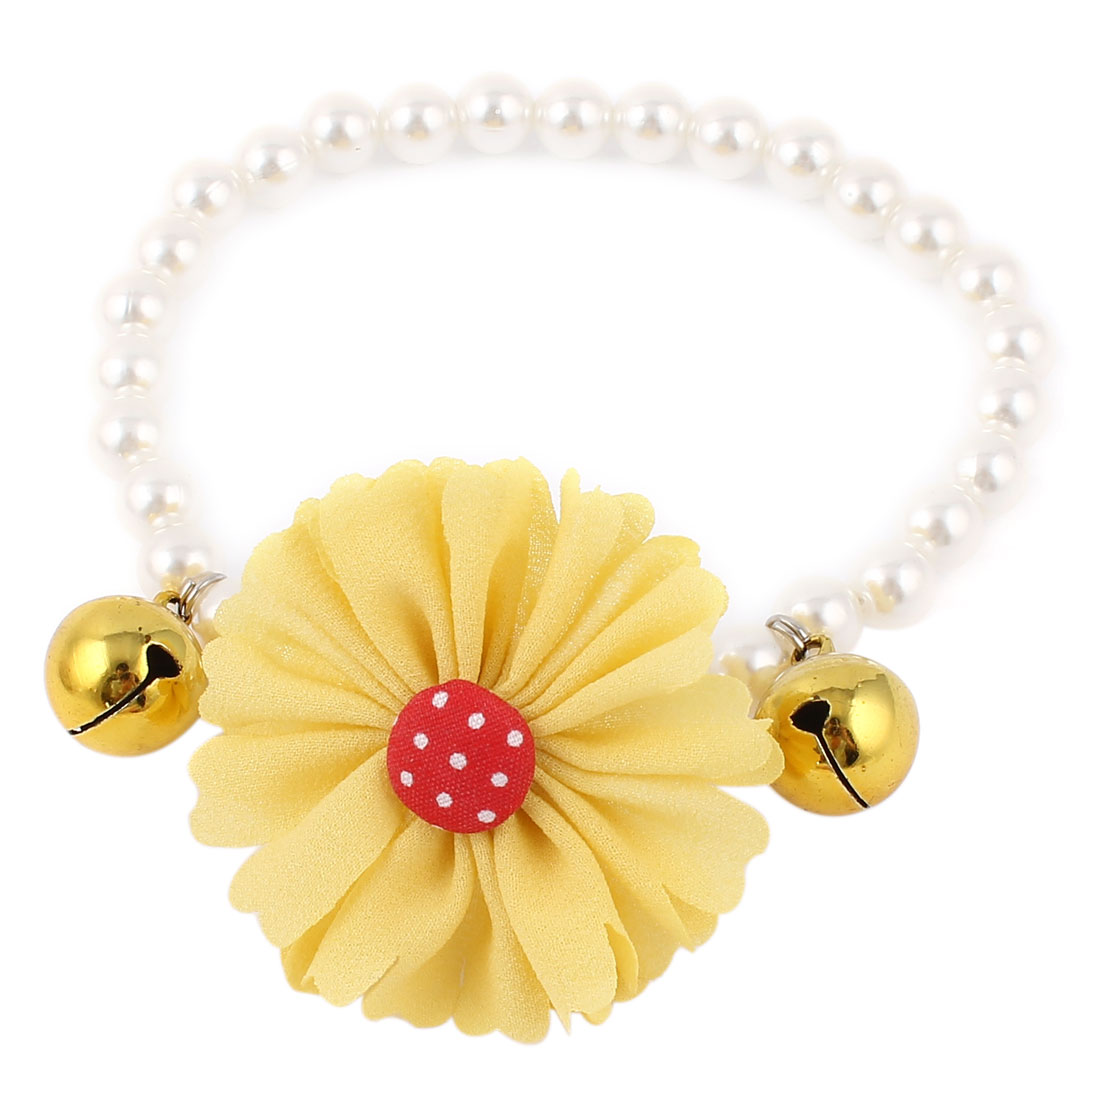 Metal Bell Pendant Flower Detail Pet Dog Beads Imitation Pearls Collar Necklace White Yellow M